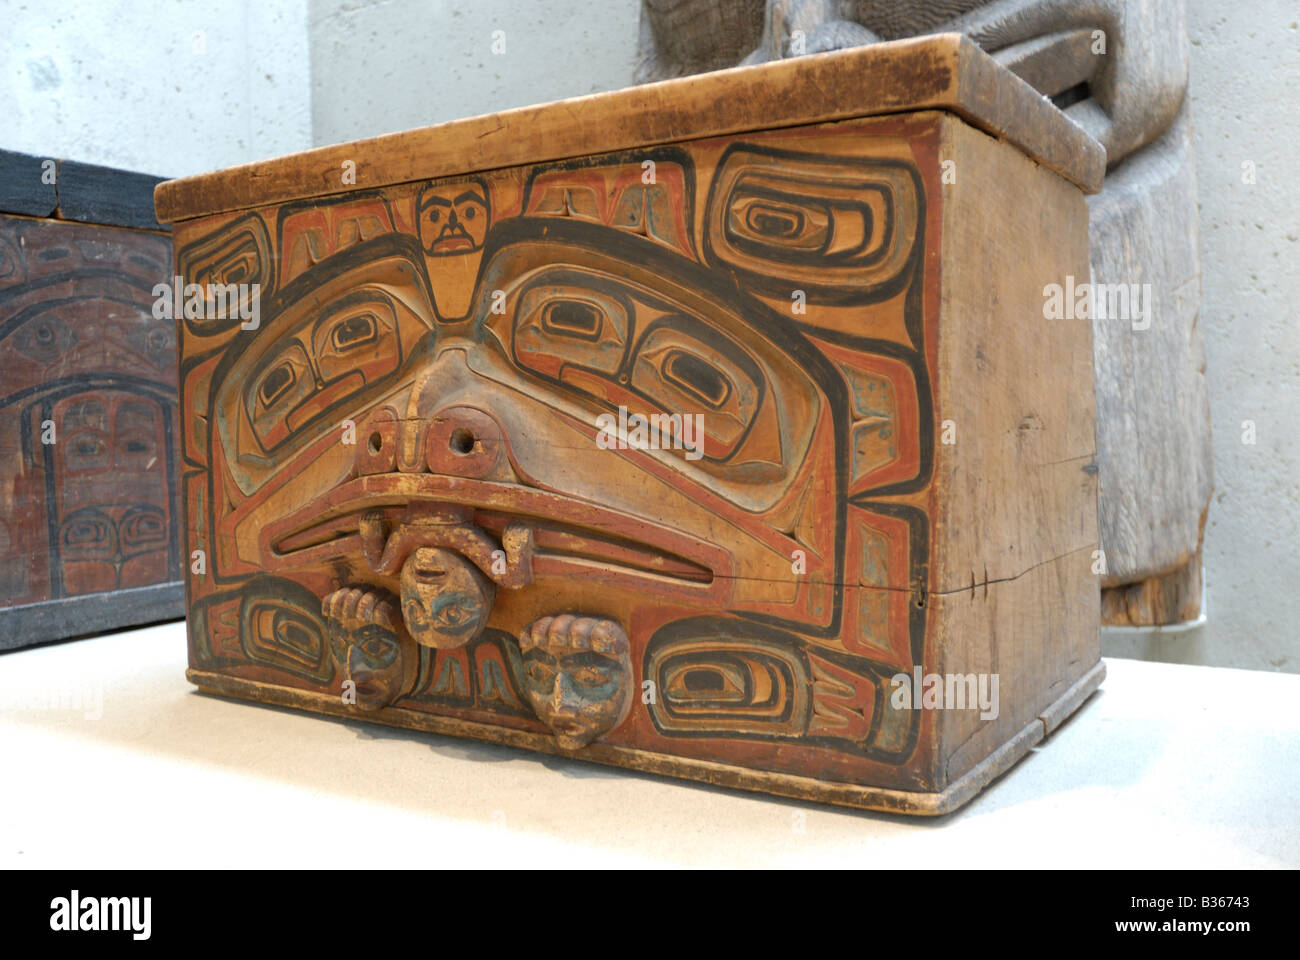 Canadian Native Artifacts Haida Storage Box Often Referred To As A Stock Photo Royalty Free